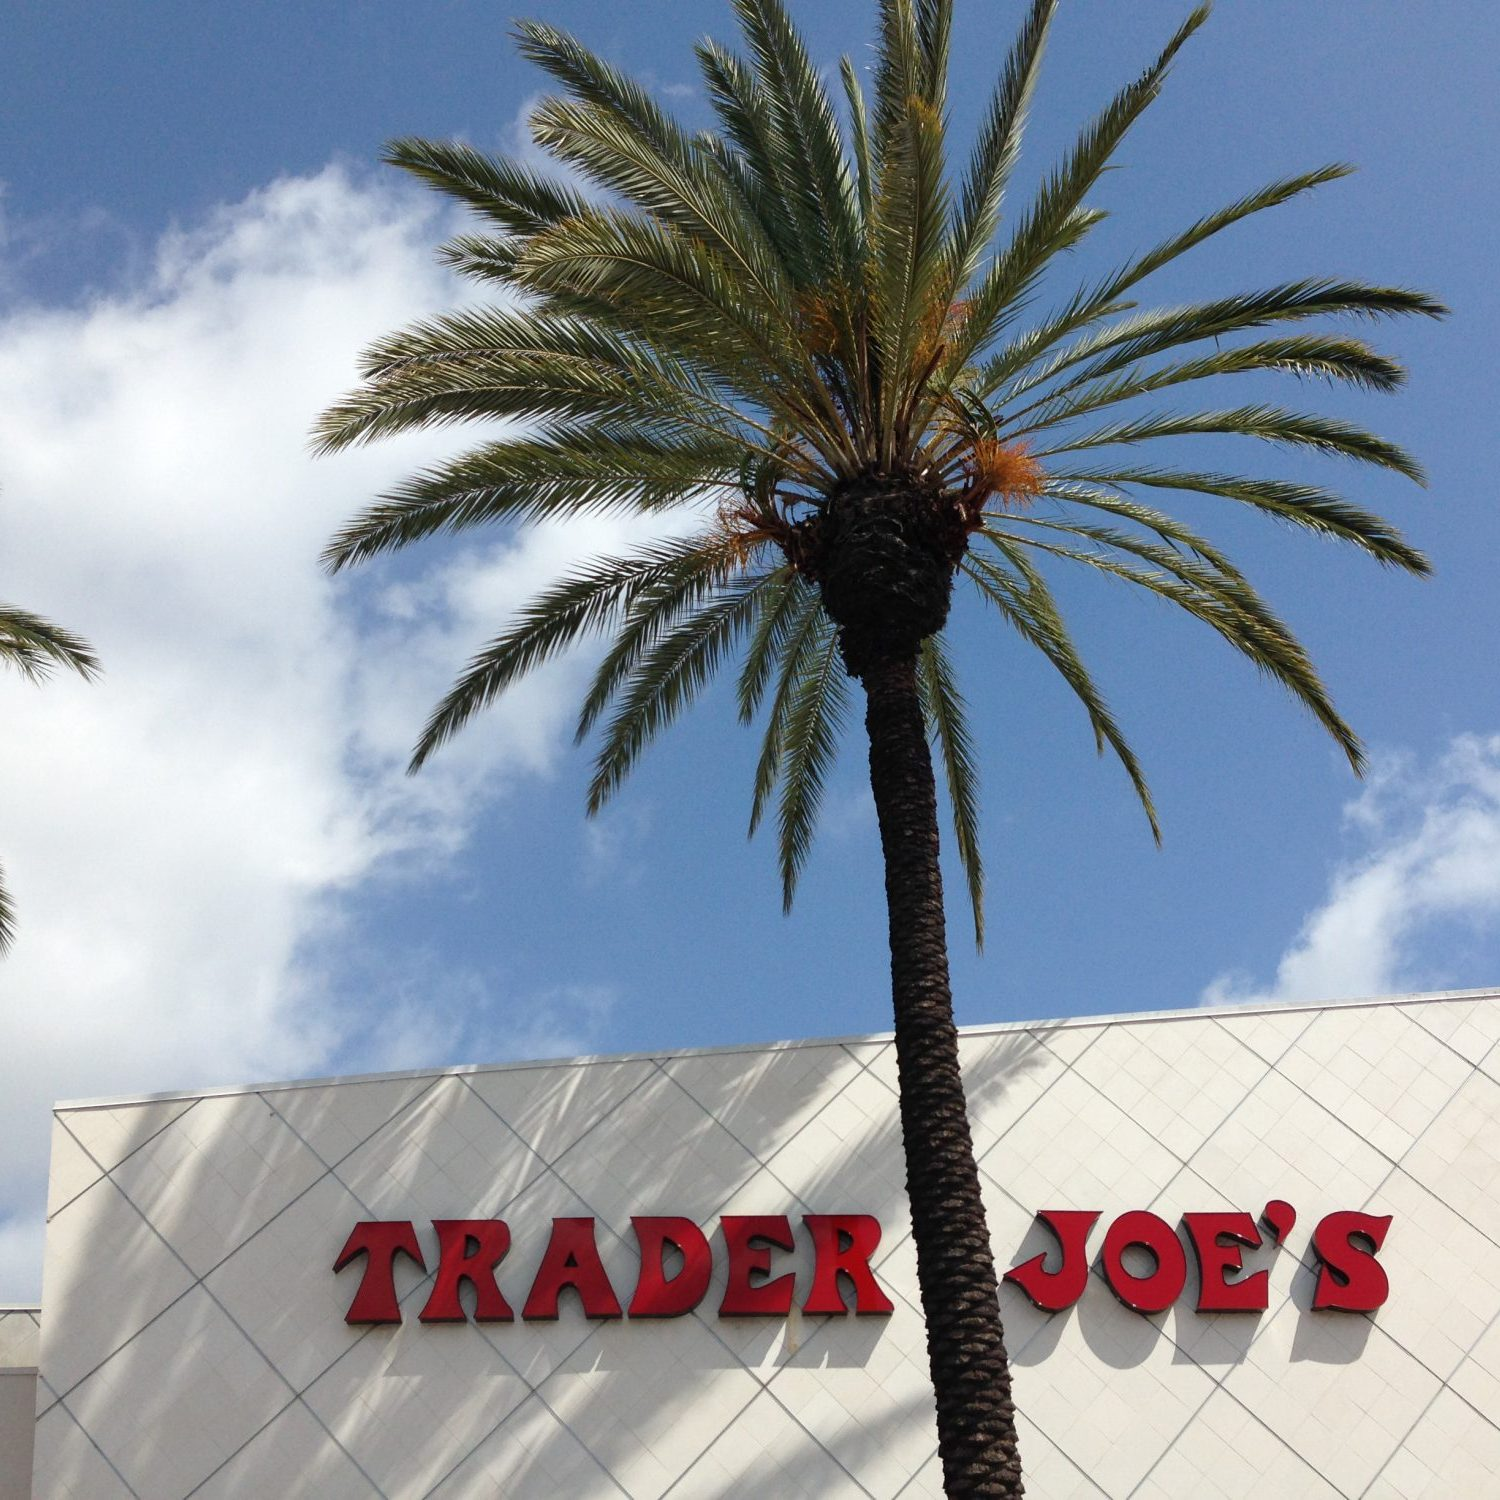 trader joes in orange county dietitian picks